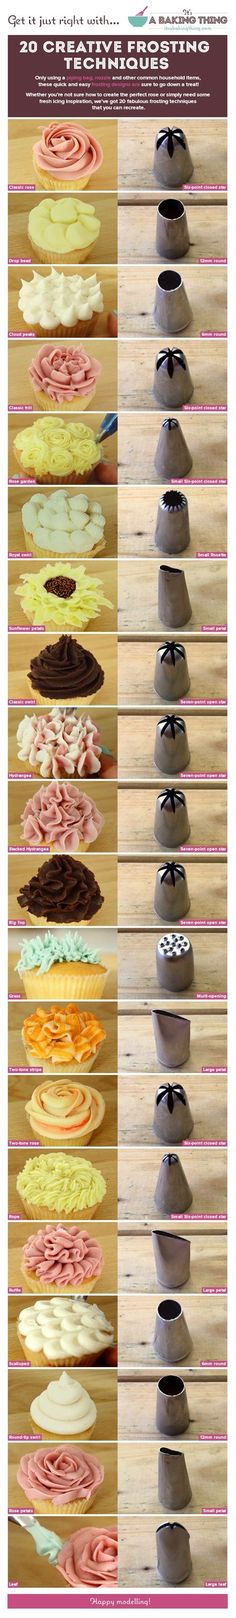 Cupcake And Frosting Guide The Best Ideas | The WHOot